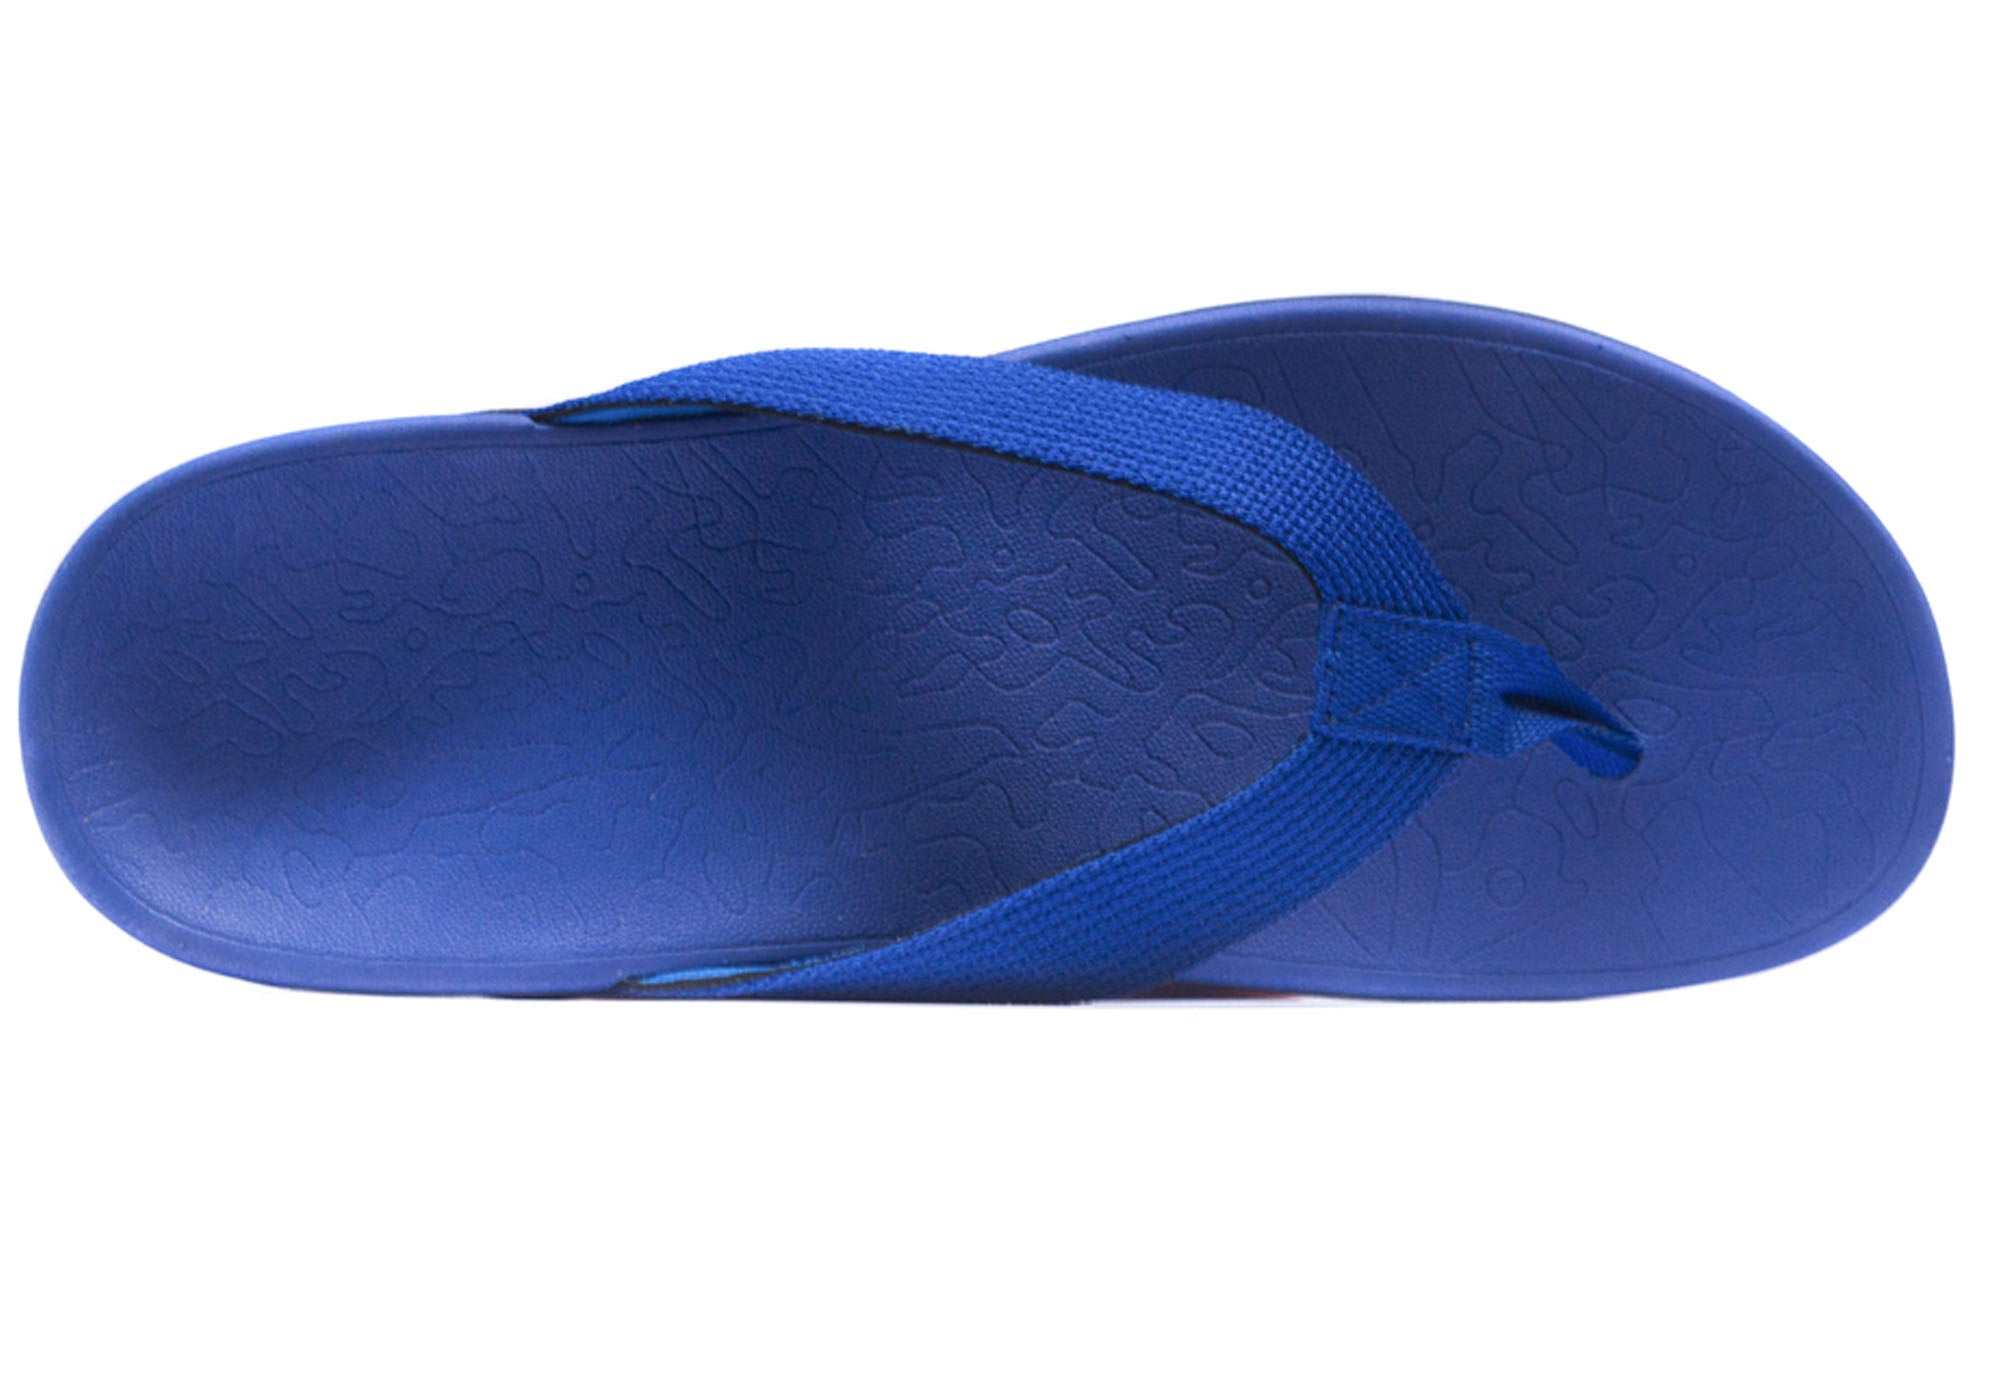 ba1bca7e5c6c Axign Mens Comfortable Supportive Orthotic Flip Flops Thongs